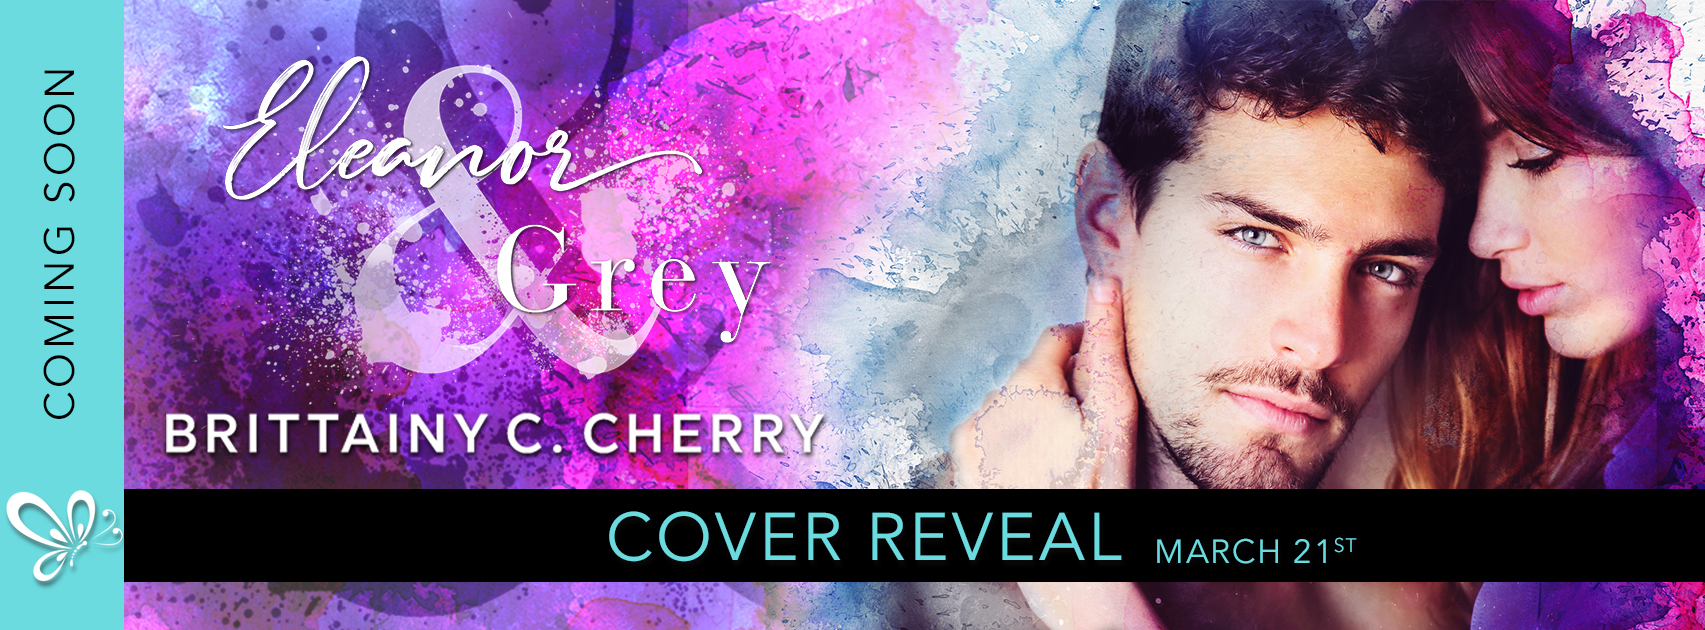 Cover Reveal: Eleanor & Grey by Brittainy C. Cherry